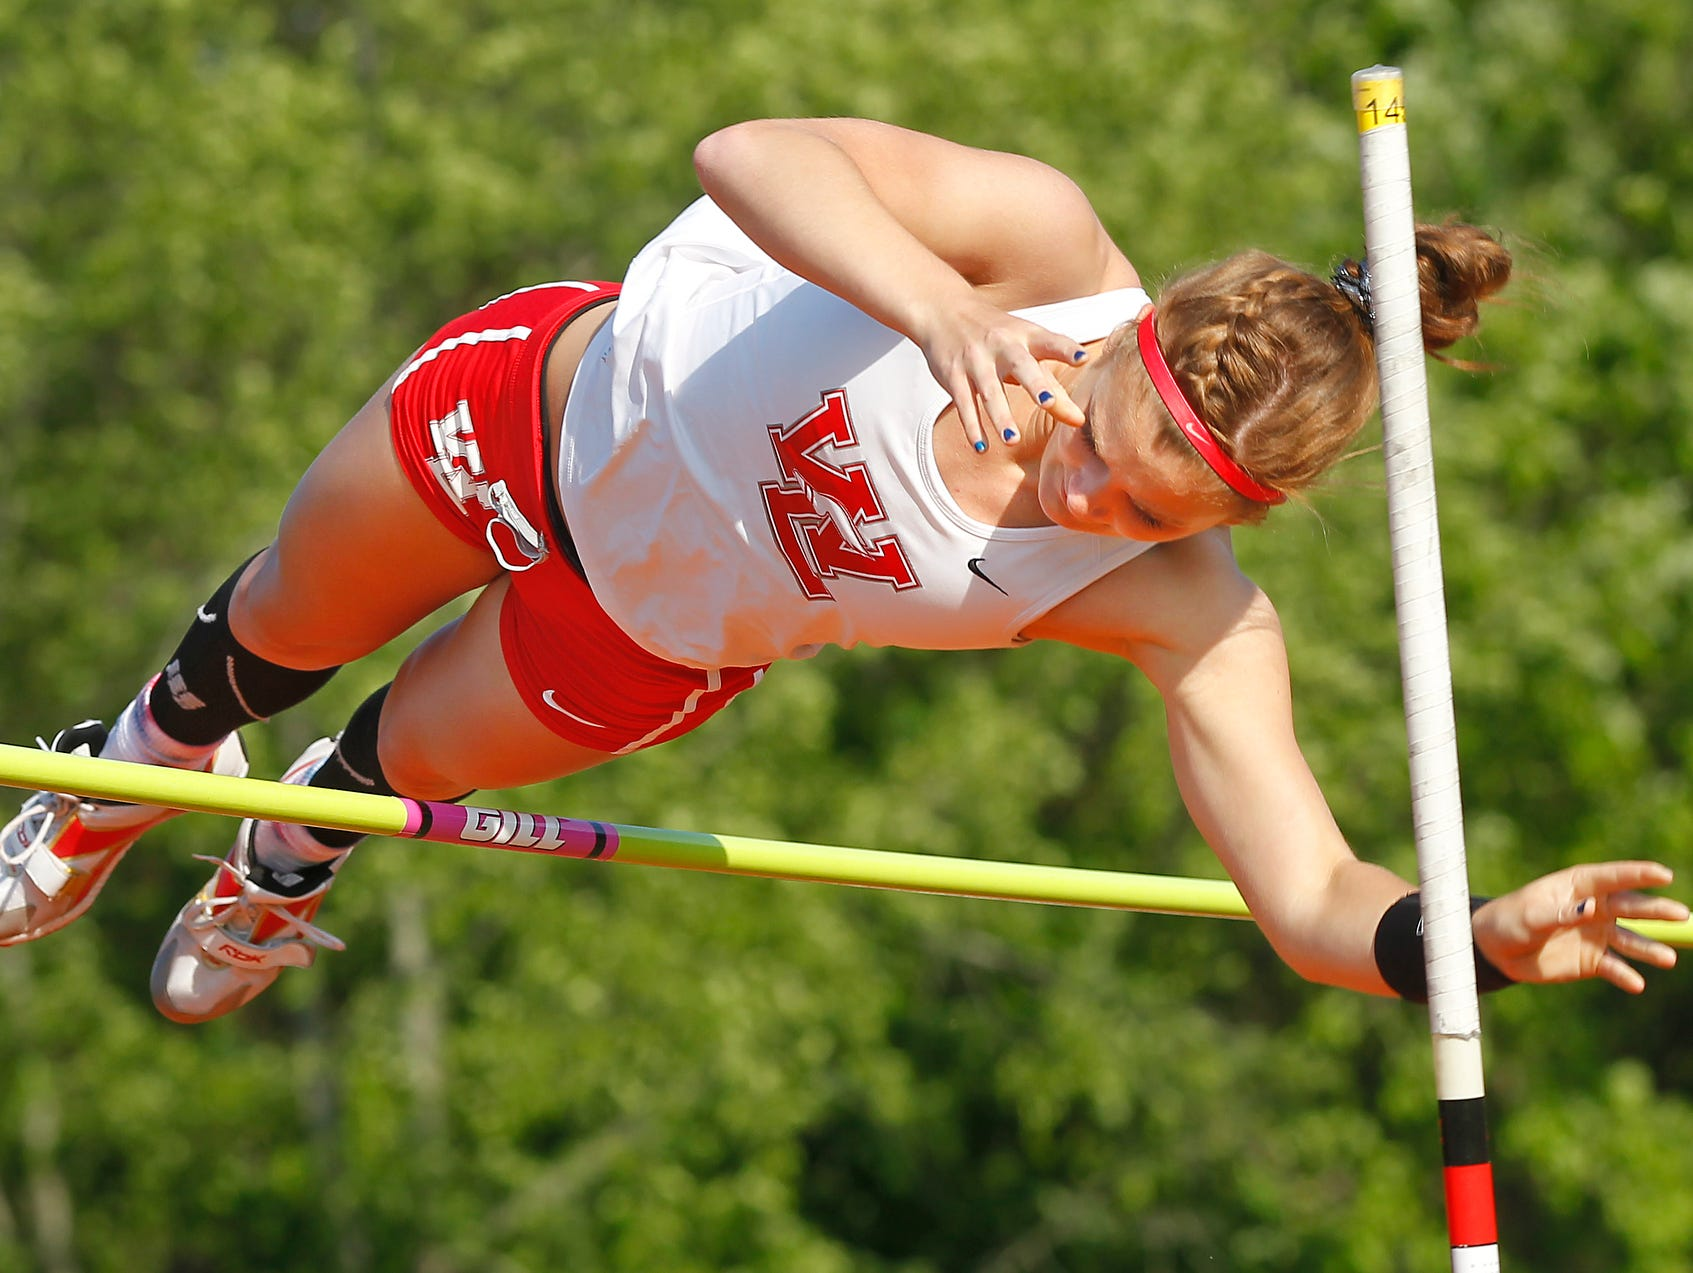 West Lafayette's Maria Siciliano clears 11 feet in the pole vault on her way to victory Tuesday in the event at the girls track sectional hosted by Harrison.